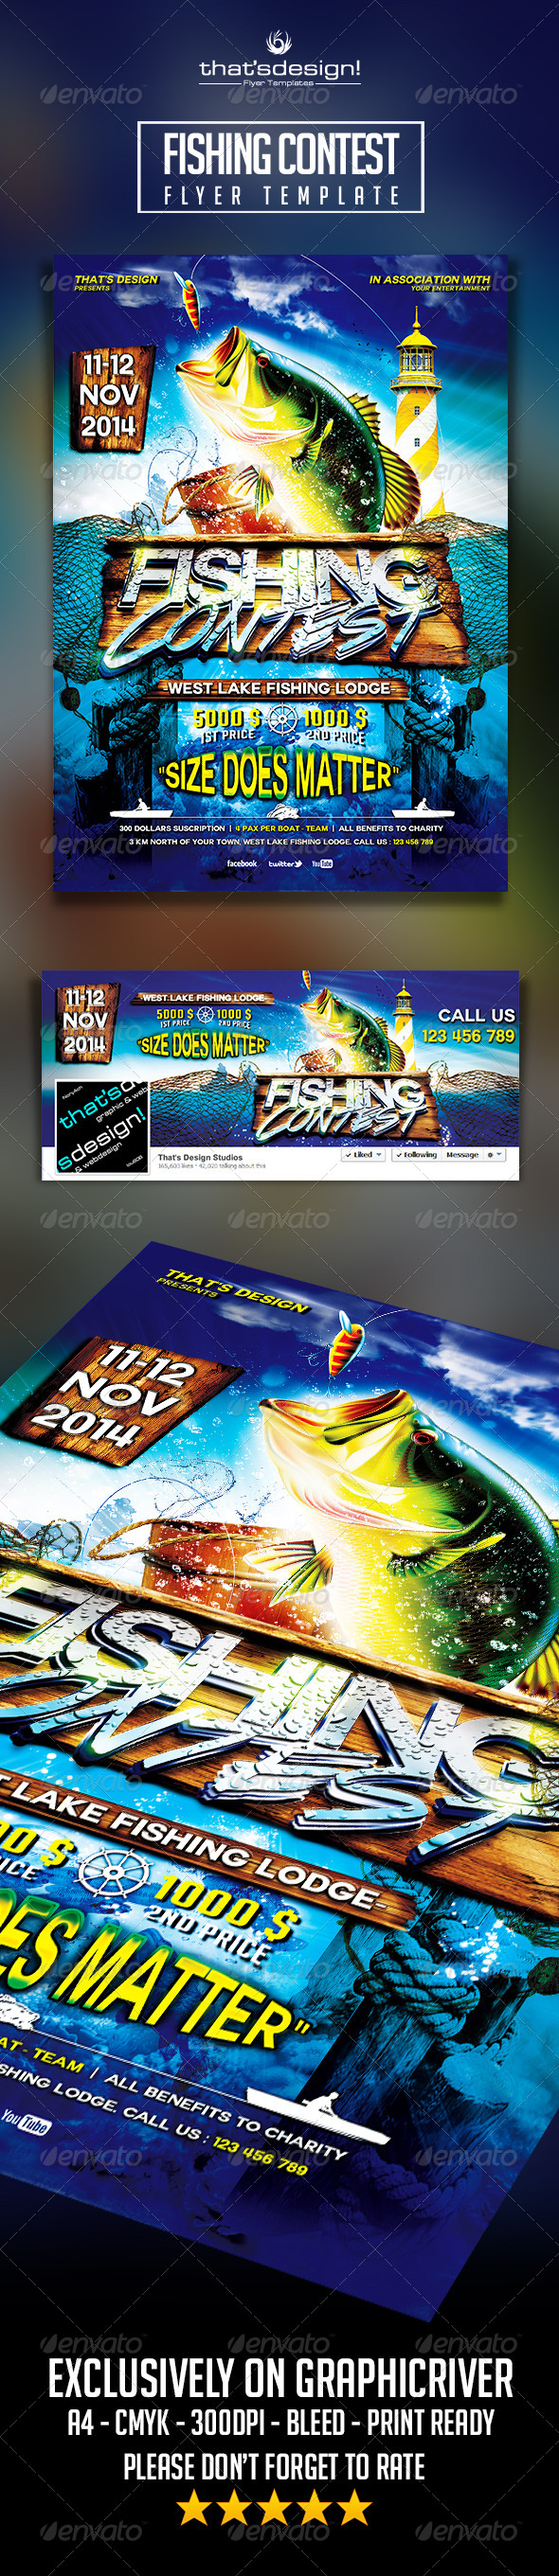 Fishing Contest Flyer Template - Events Flyers